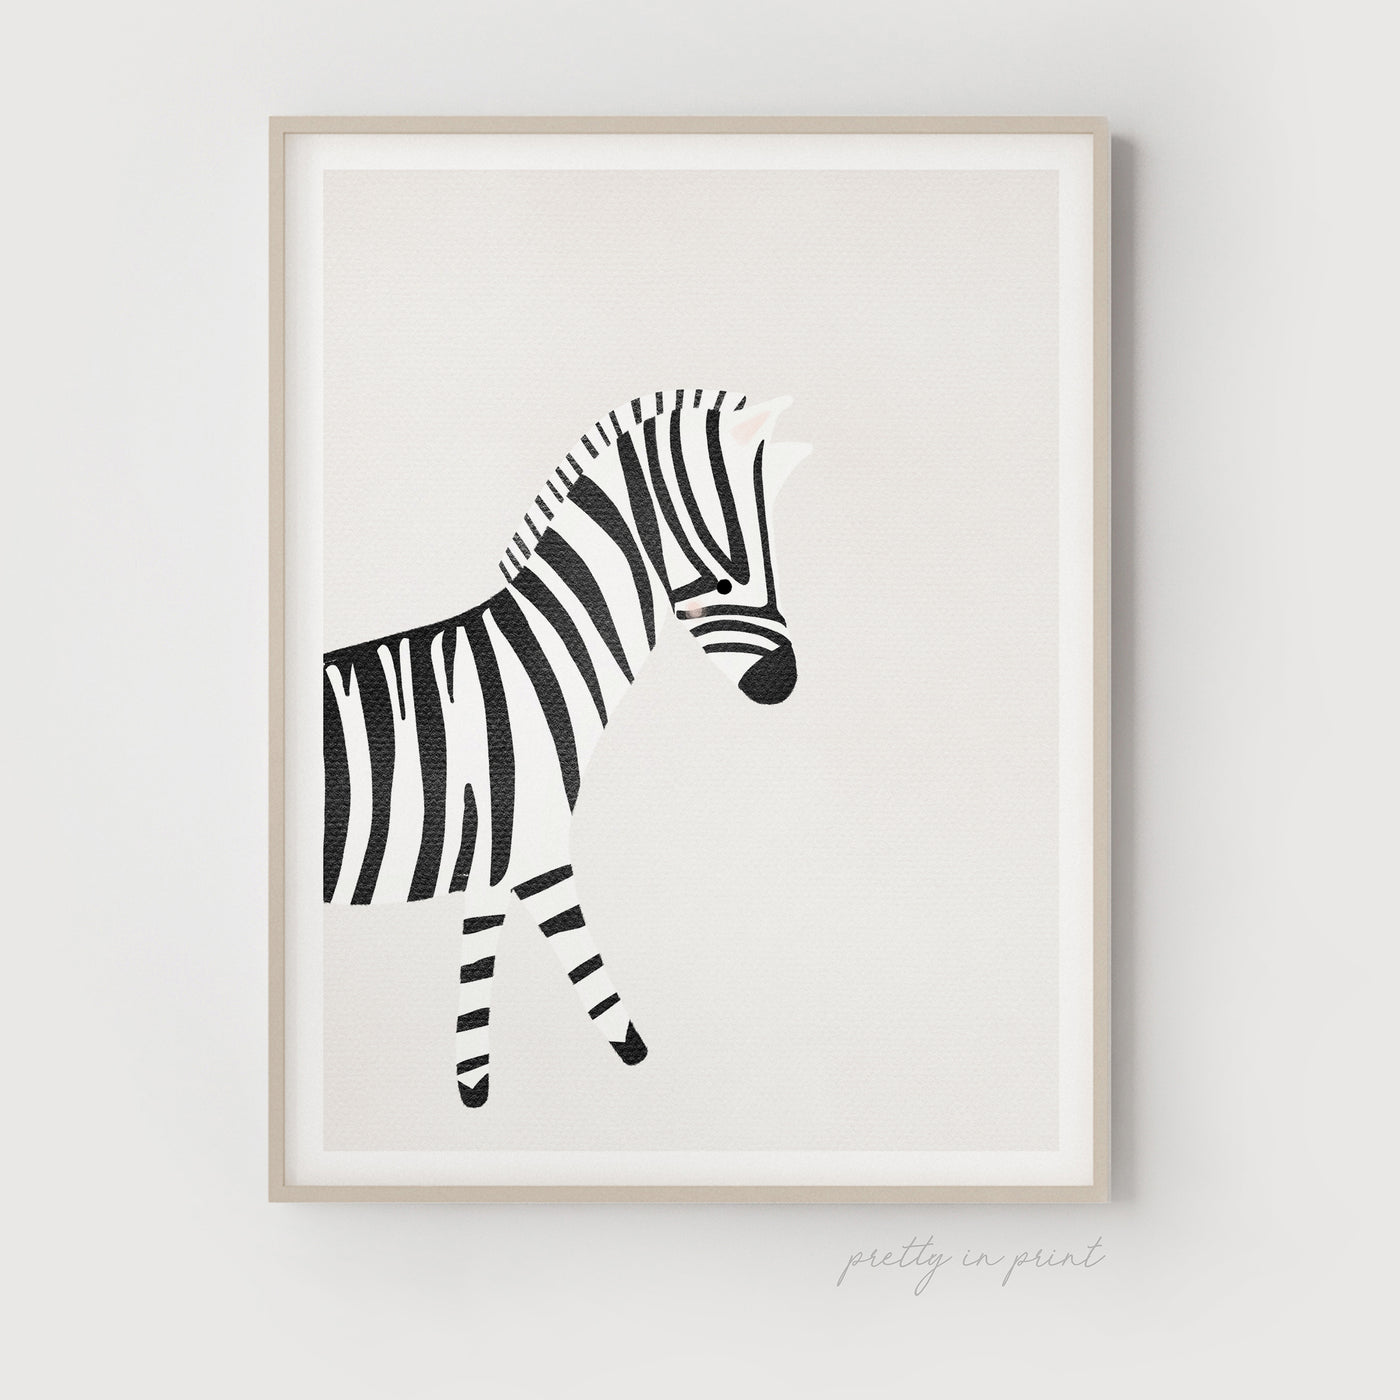 Zebra Illustration | Nursery Decor | Animal Nursery Print - Pretty in Print Art